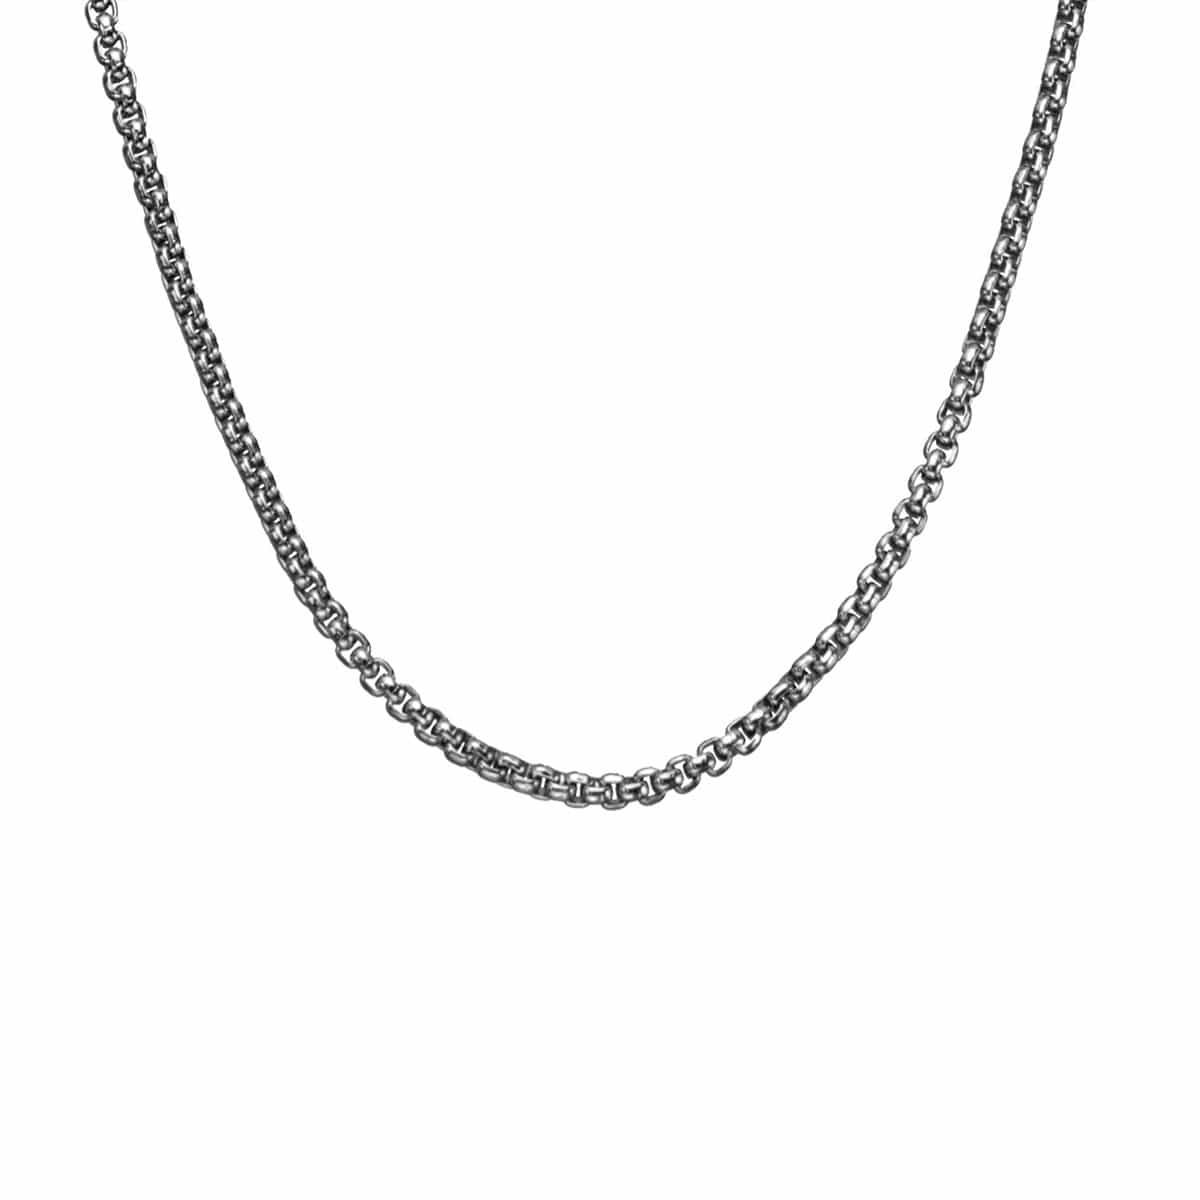 Silver Stainless Steel Large 4mm Polished Box Chain Chains